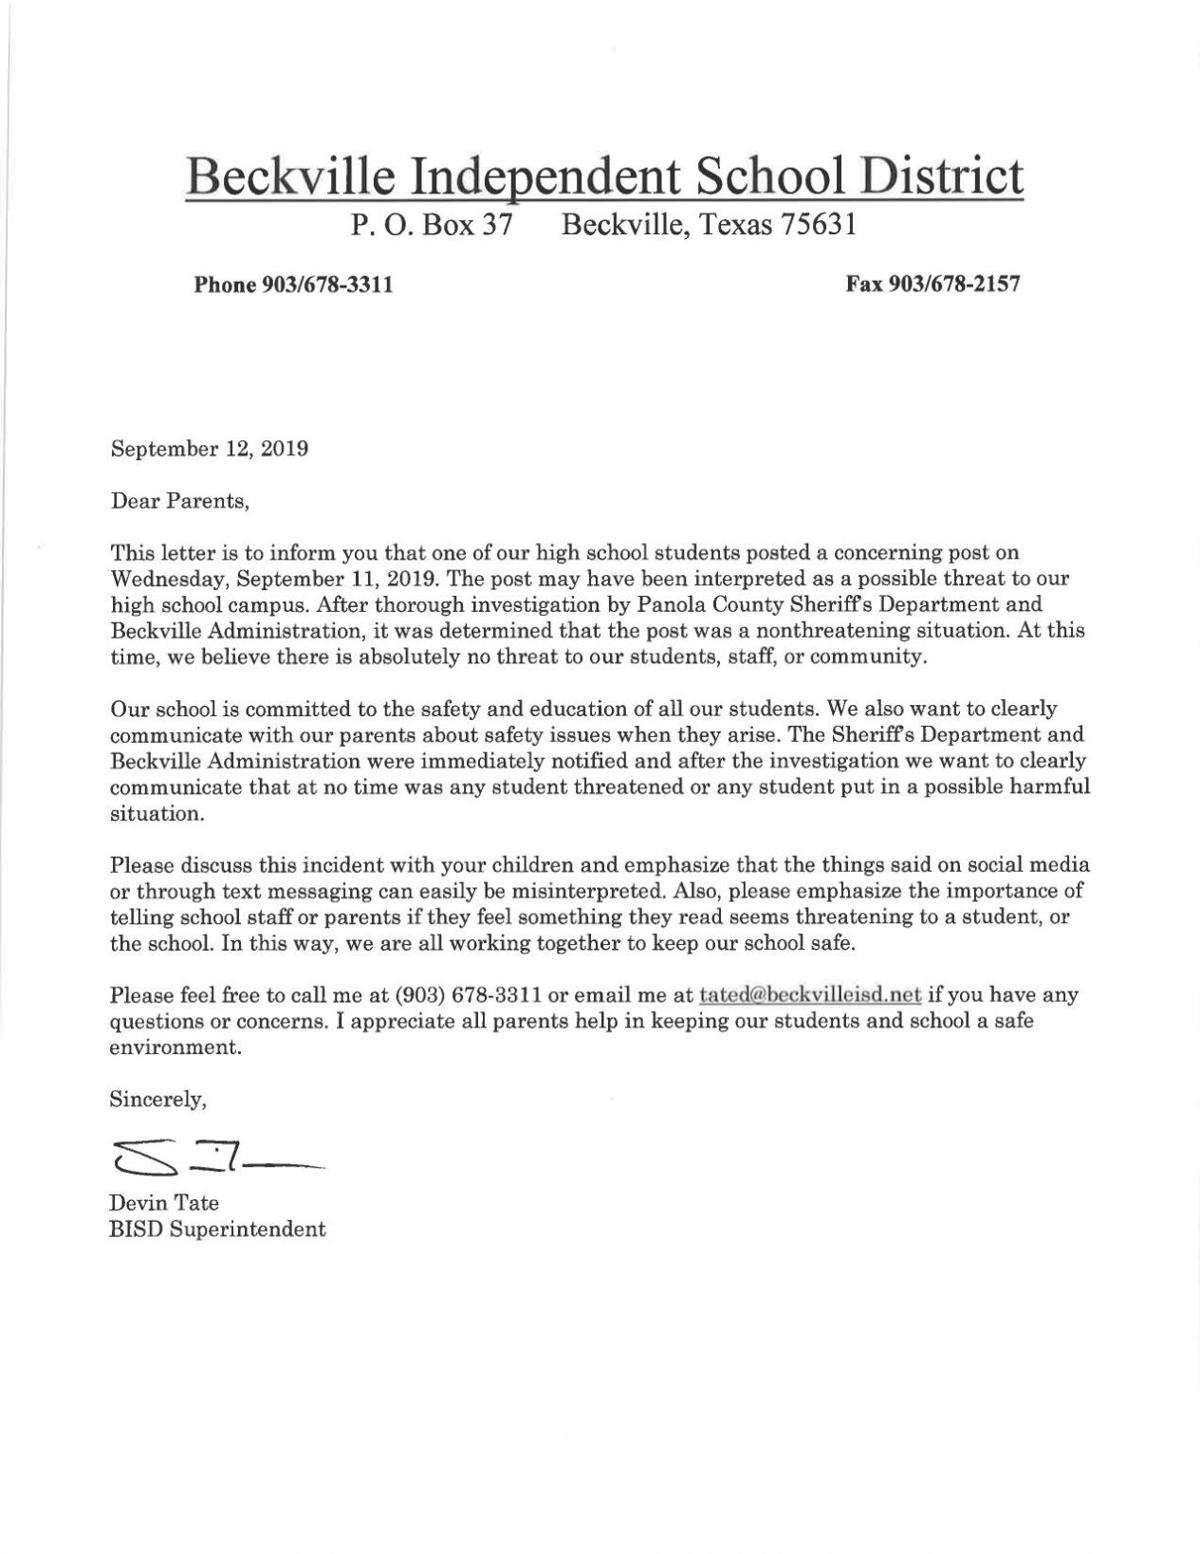 Devin Tate Letter to Parents